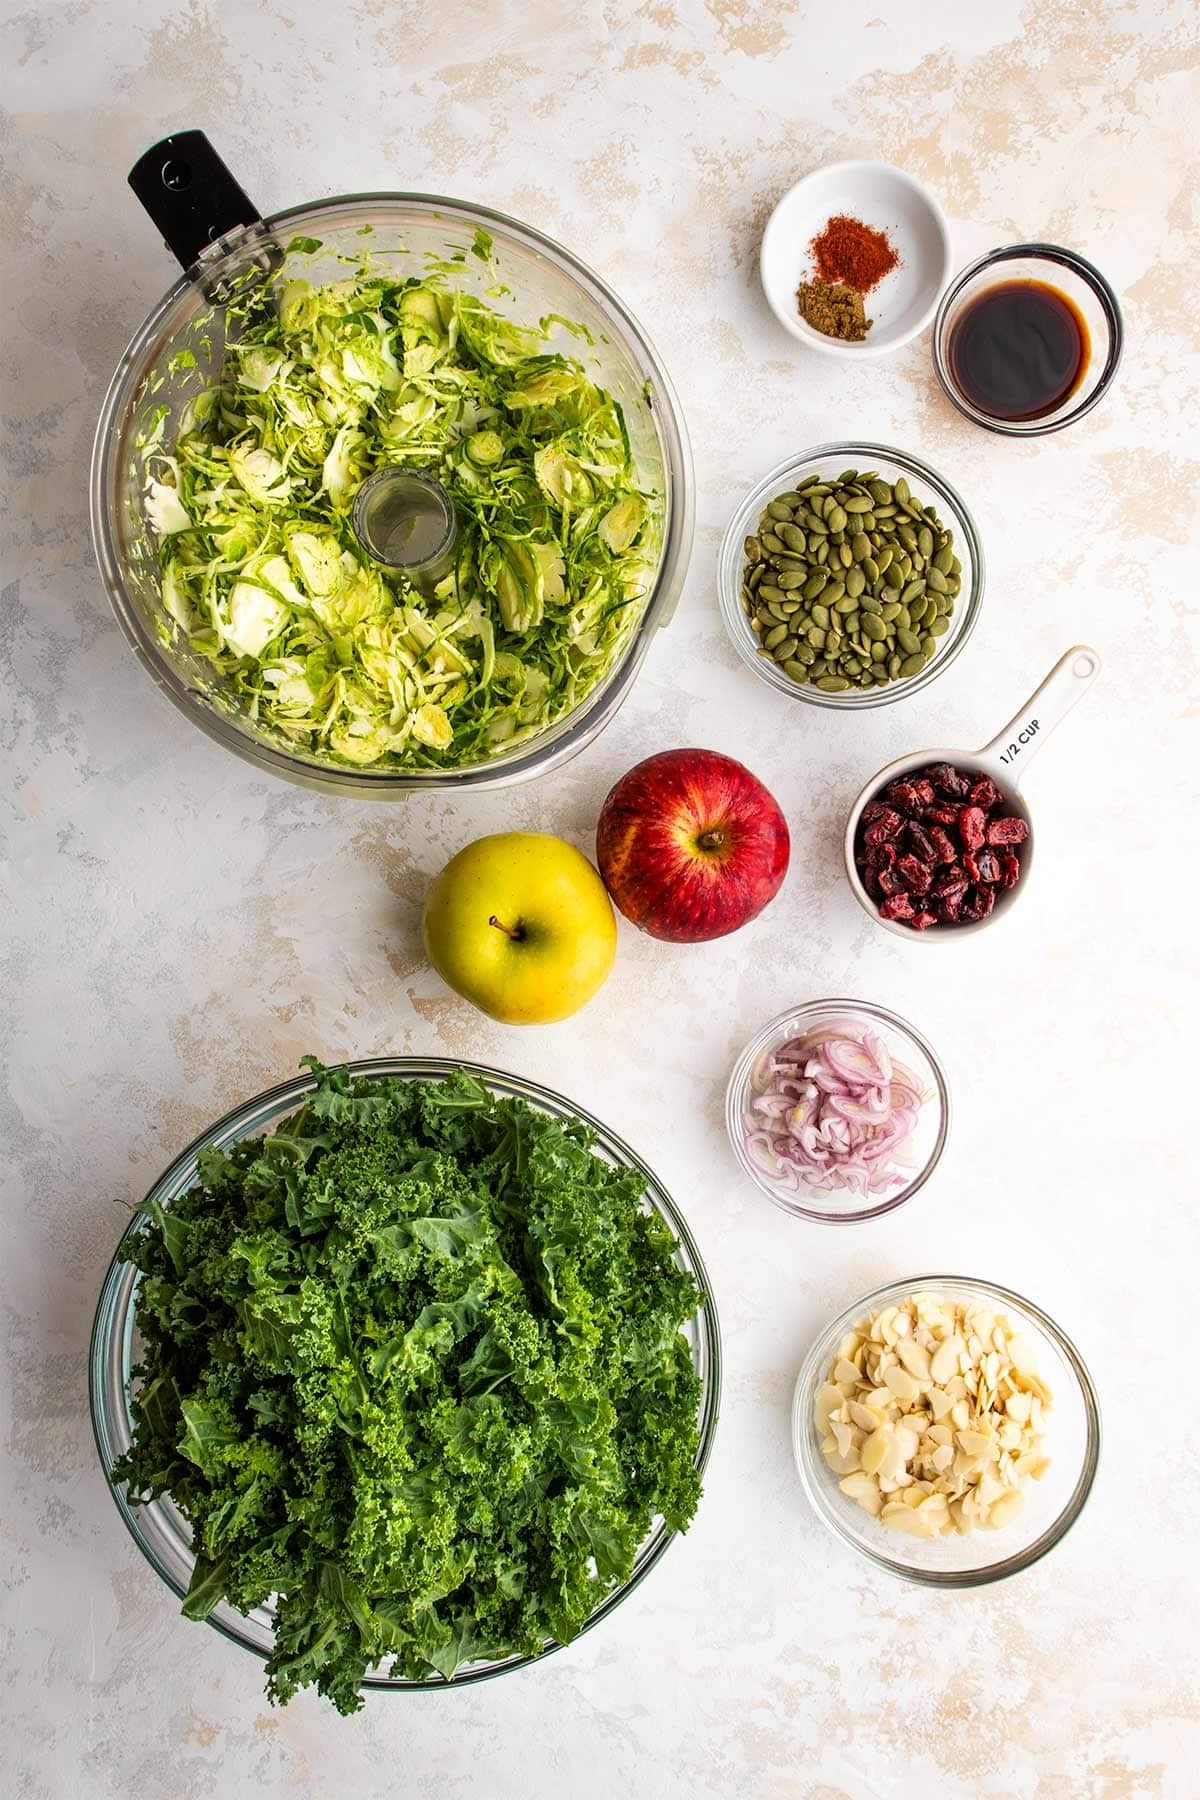 Ingredients for Kale and Brussels Sprouts Salad viewed from overhead.